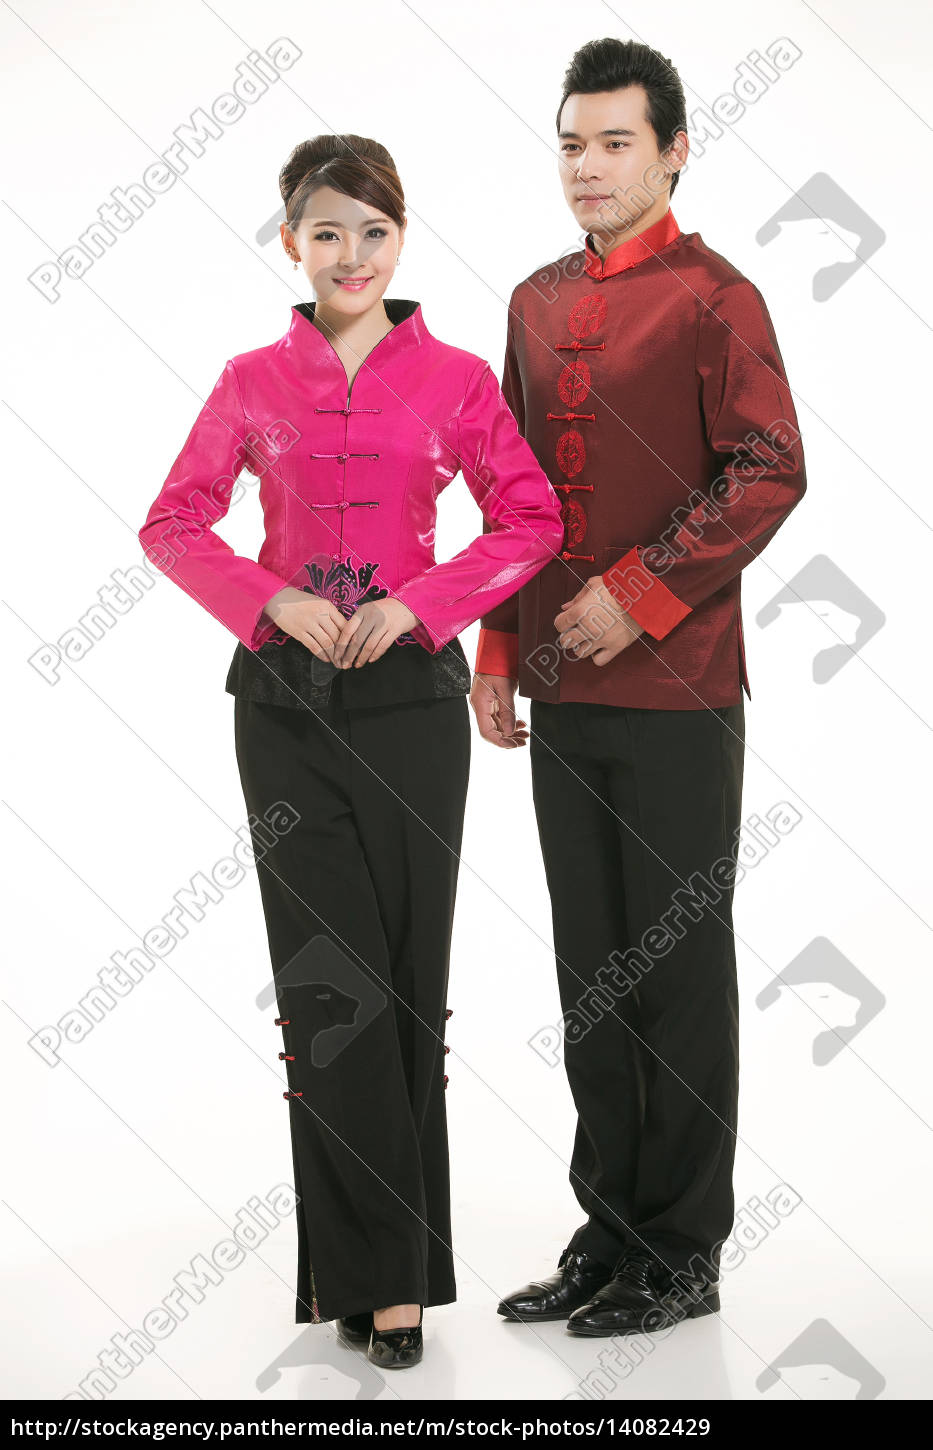 wearing, chinese, clothing, waiter, in, front - 14082429